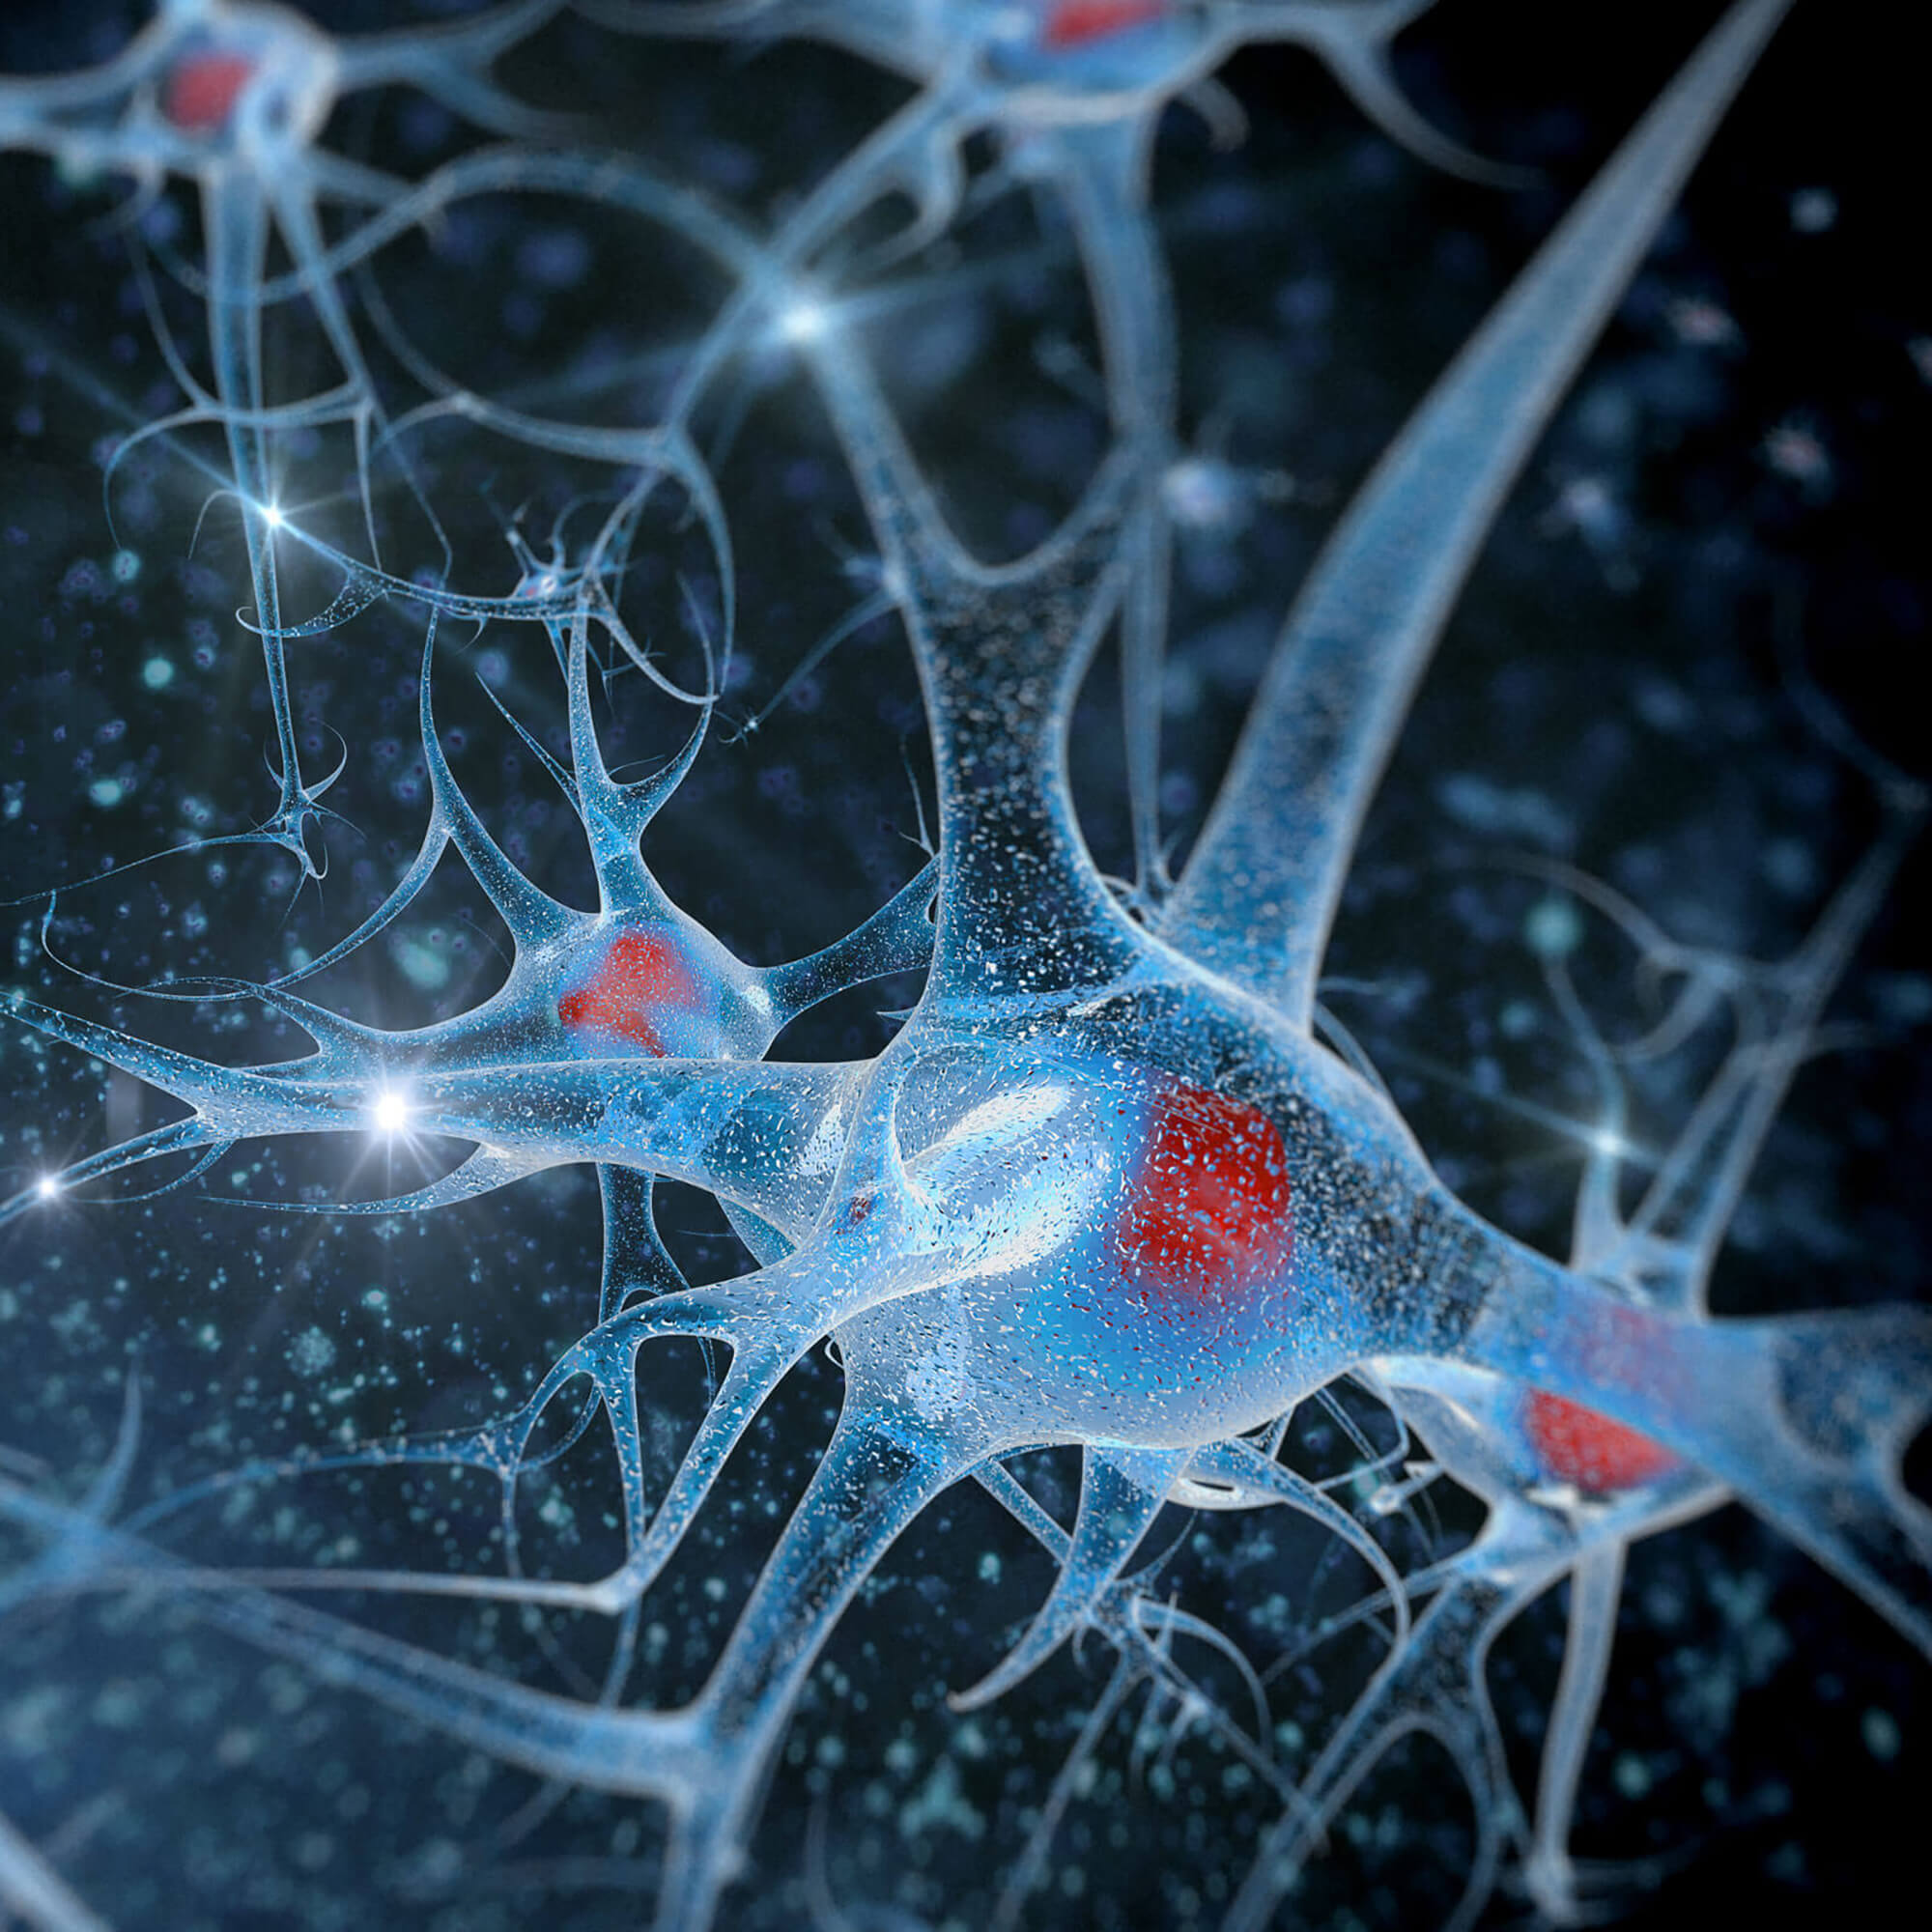 Microscopic view of neurons